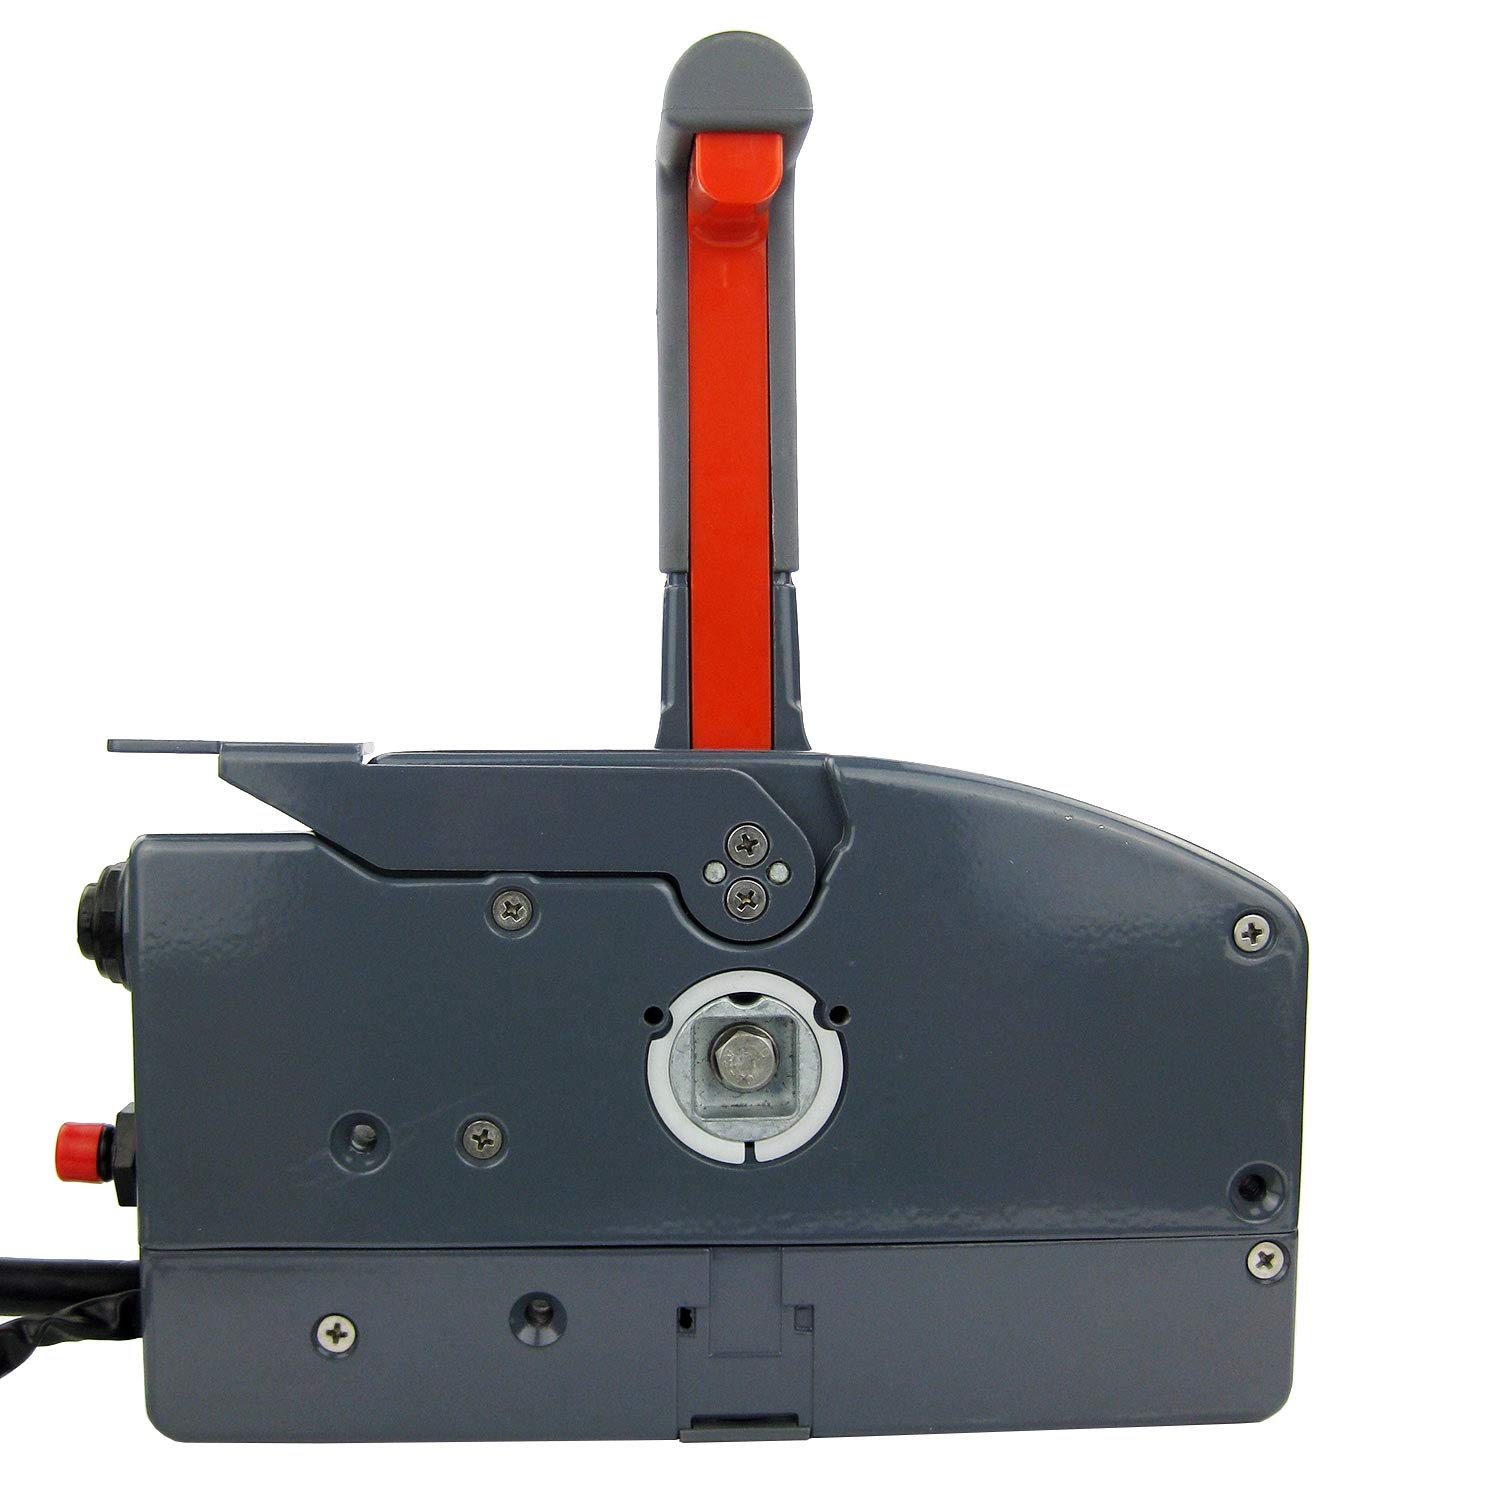 SEAWELL Boat Outboard Remote Control Box for Yamaha 10Pin Cable Right Hand Push Throttle